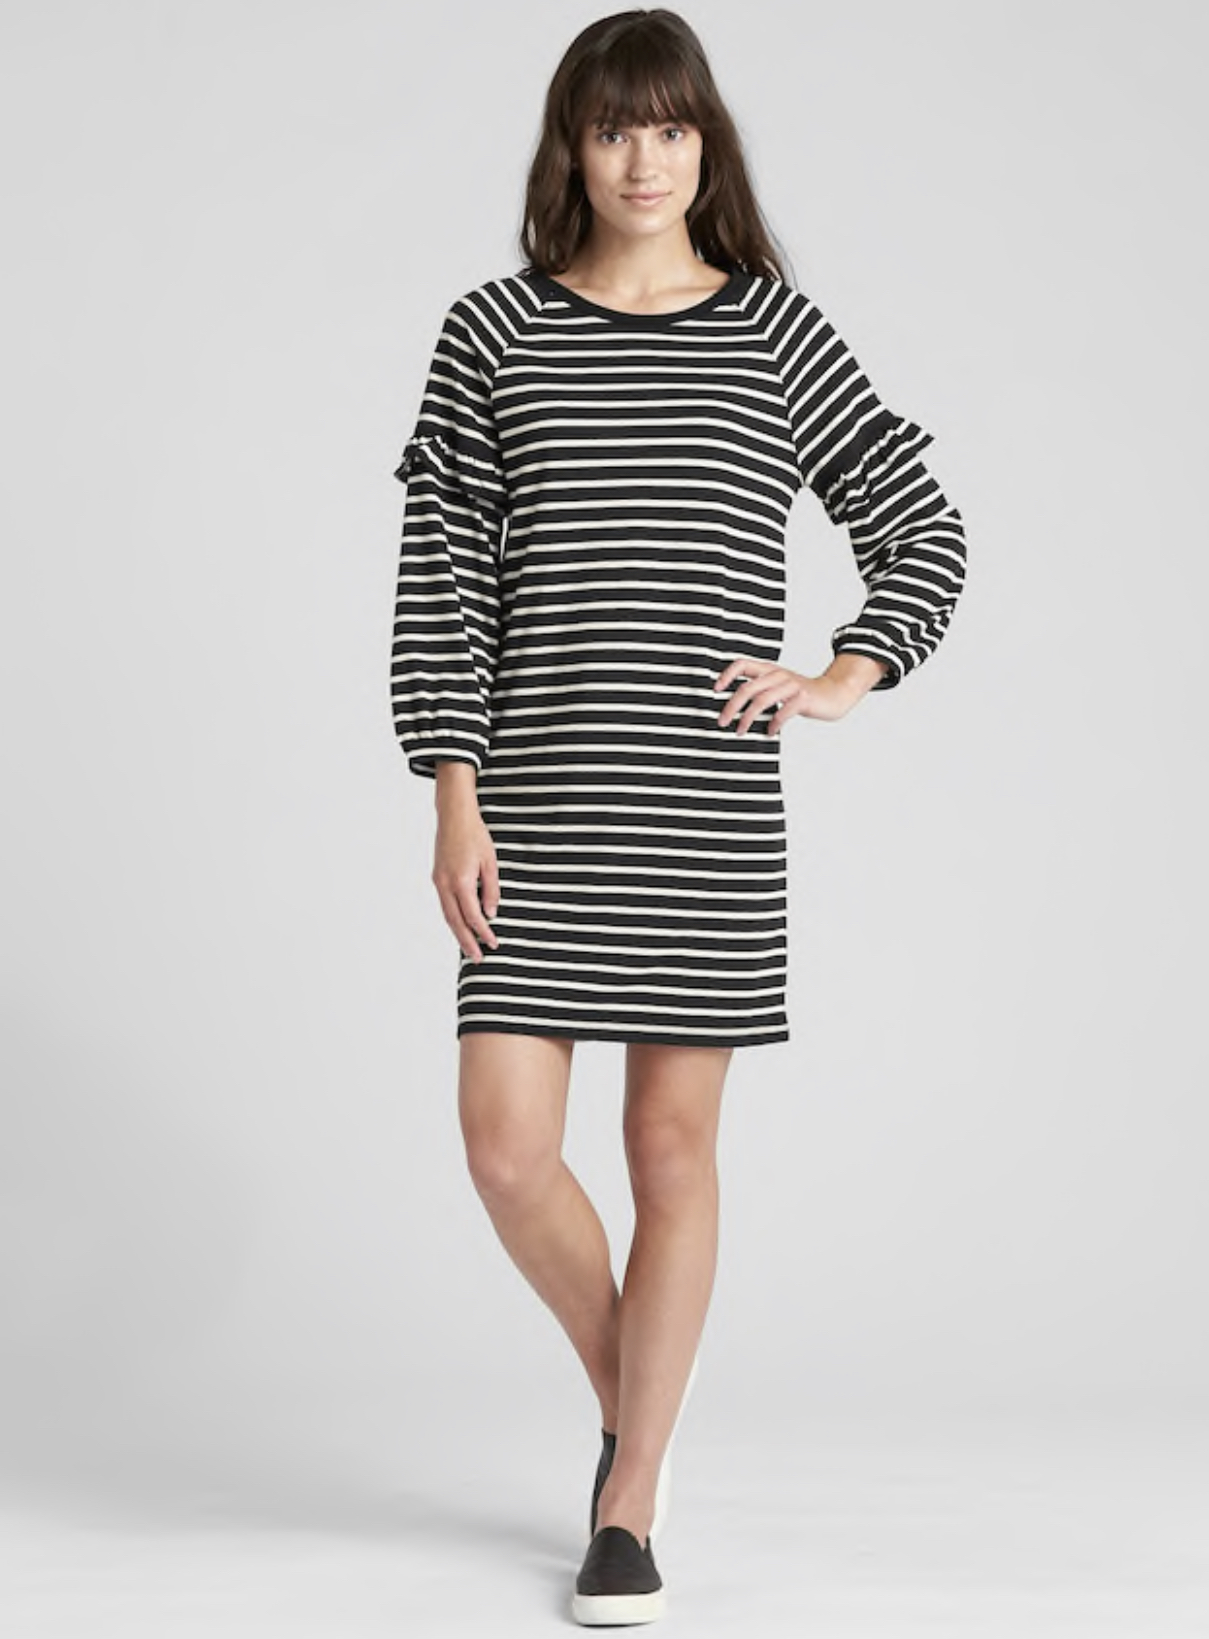 GAP Ruffle Balloon Sleeve Stripe Dress in black/ white size small EUC orig.r tl: $49.97<br /> <br /> &quot;Soft, fluid knit.<br /> Long raglan balloon sleeves, shirring at flat cuffs.<br /> Ruffle trim detailing at upper sleeves.<br /> Rib-knit trim at crewneck.<br /> Assorted allover stripes.&quot;<br /> <br /> Photo and description credits: gap.com